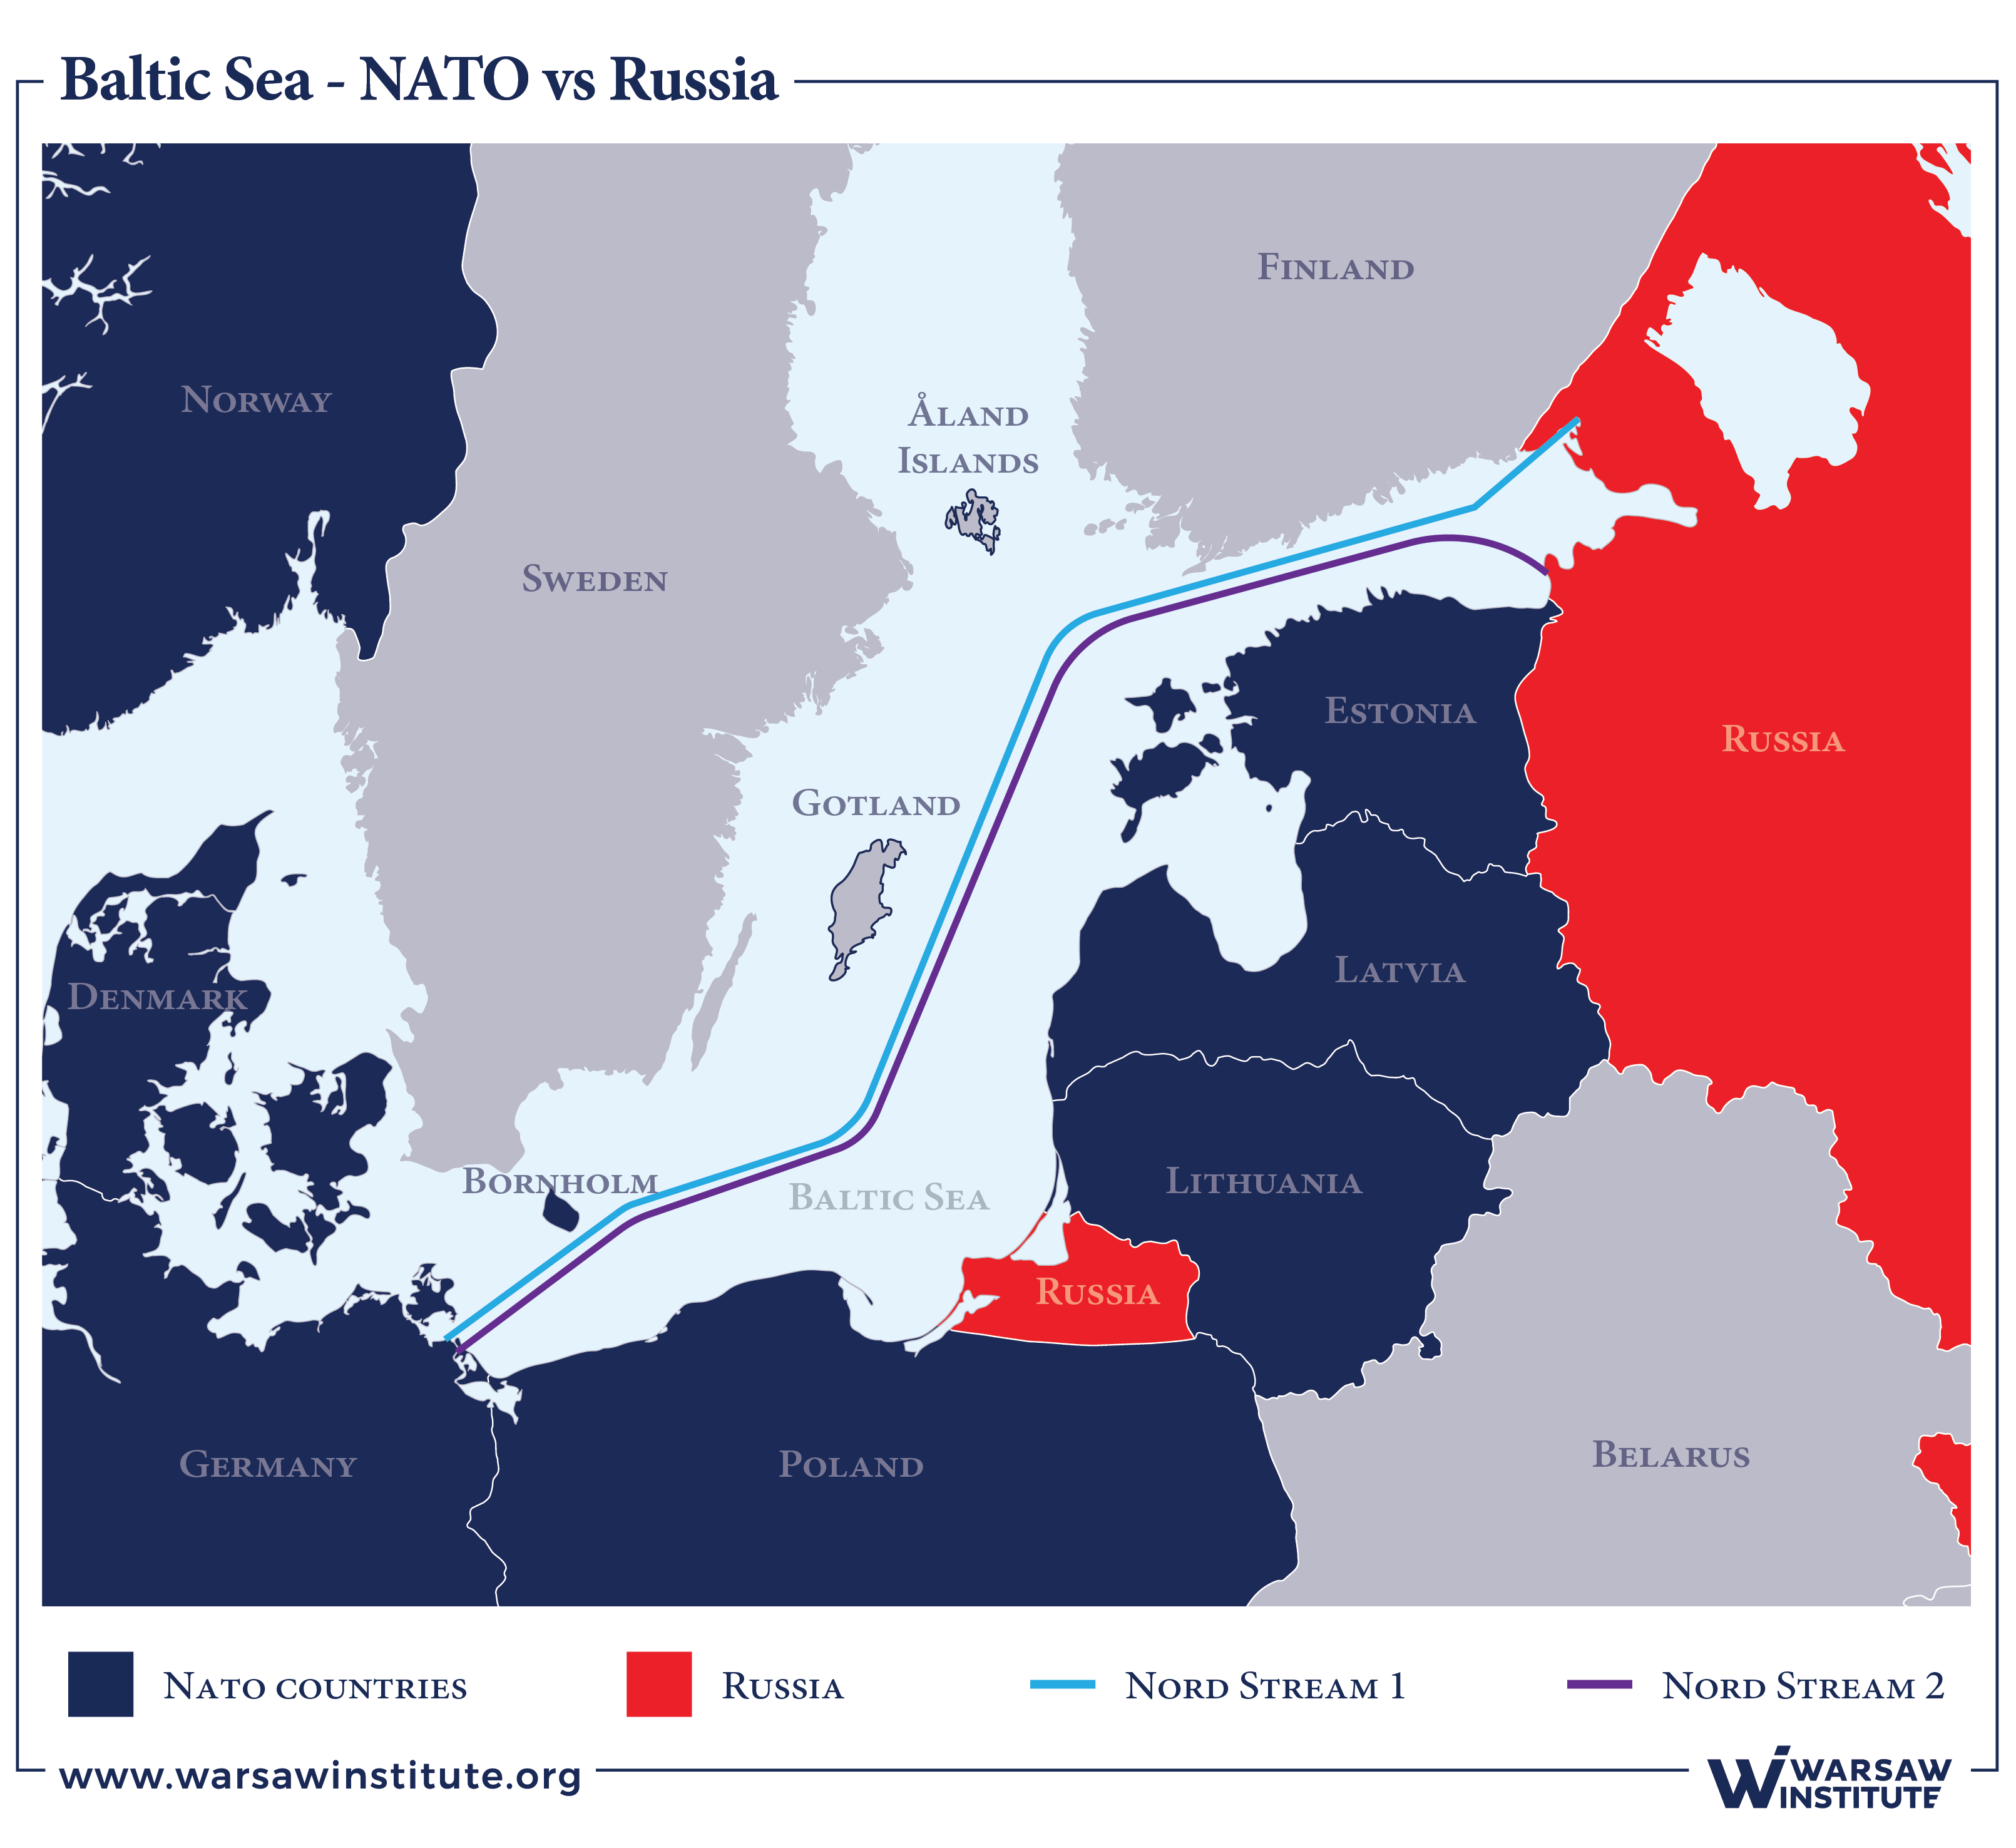 Sweden Faces the Russian Threat in the Baltic Sea | Warsaw ... on maritime climate map, al hajar mountains map, imperialism map, european union map, balkanization map, north european plain map, liwa oasis map, kentucky bend map, capital map, language family map, humid continental map,